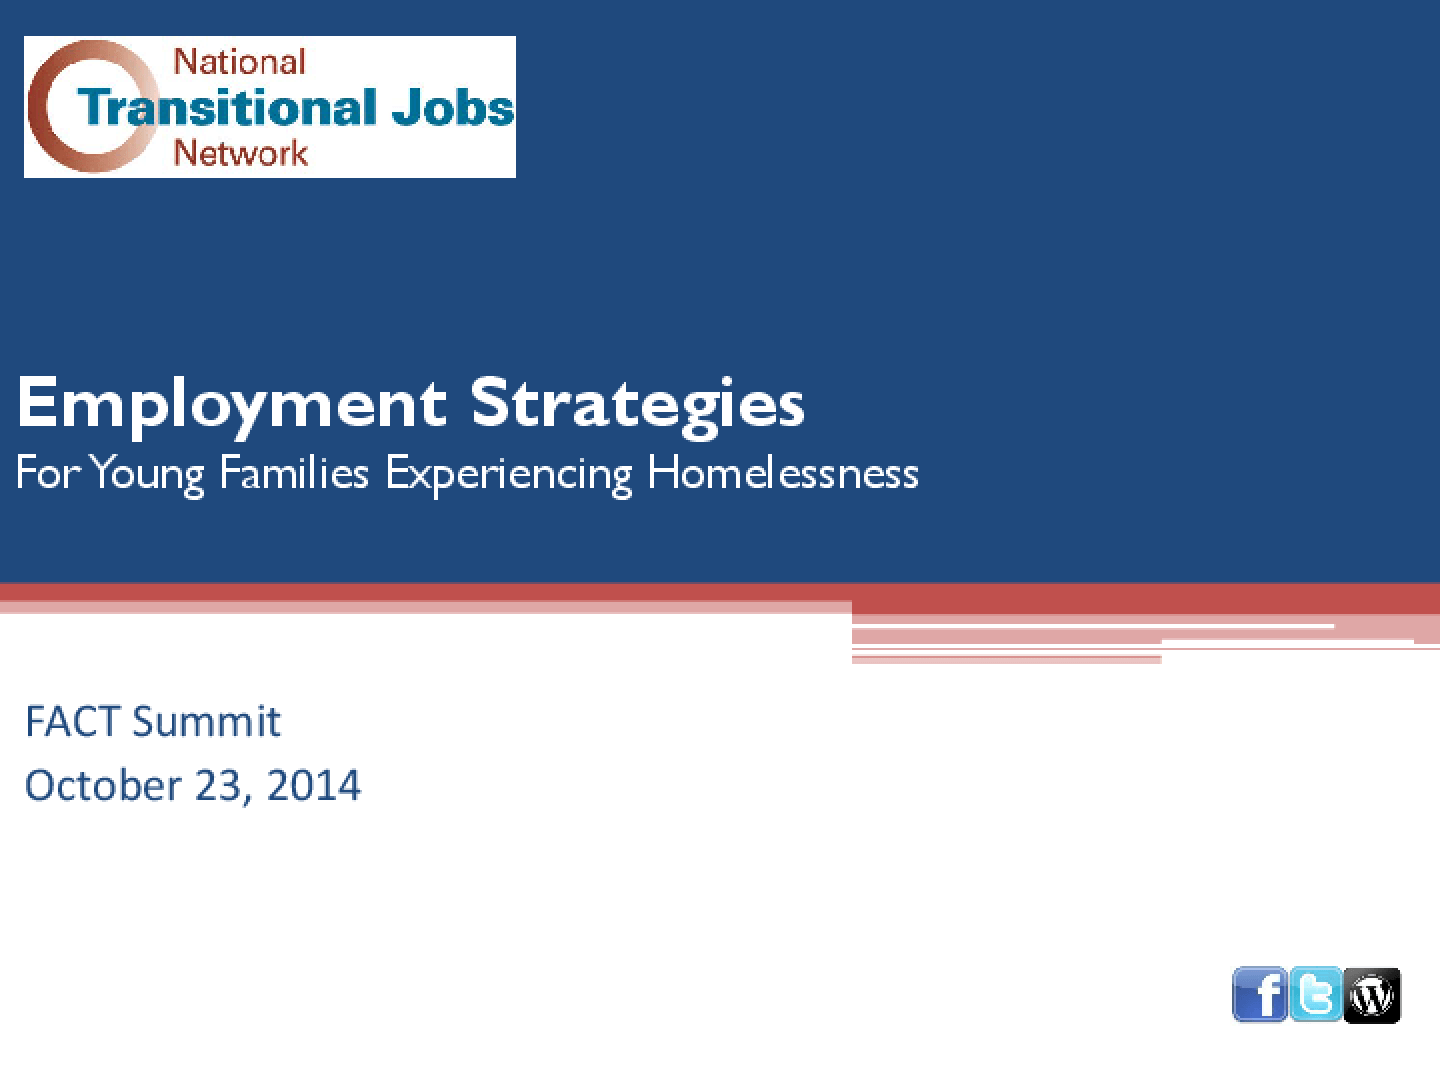 Employment Strategies for Young Families Experiencing Homelessness: FACT Summit Presentation